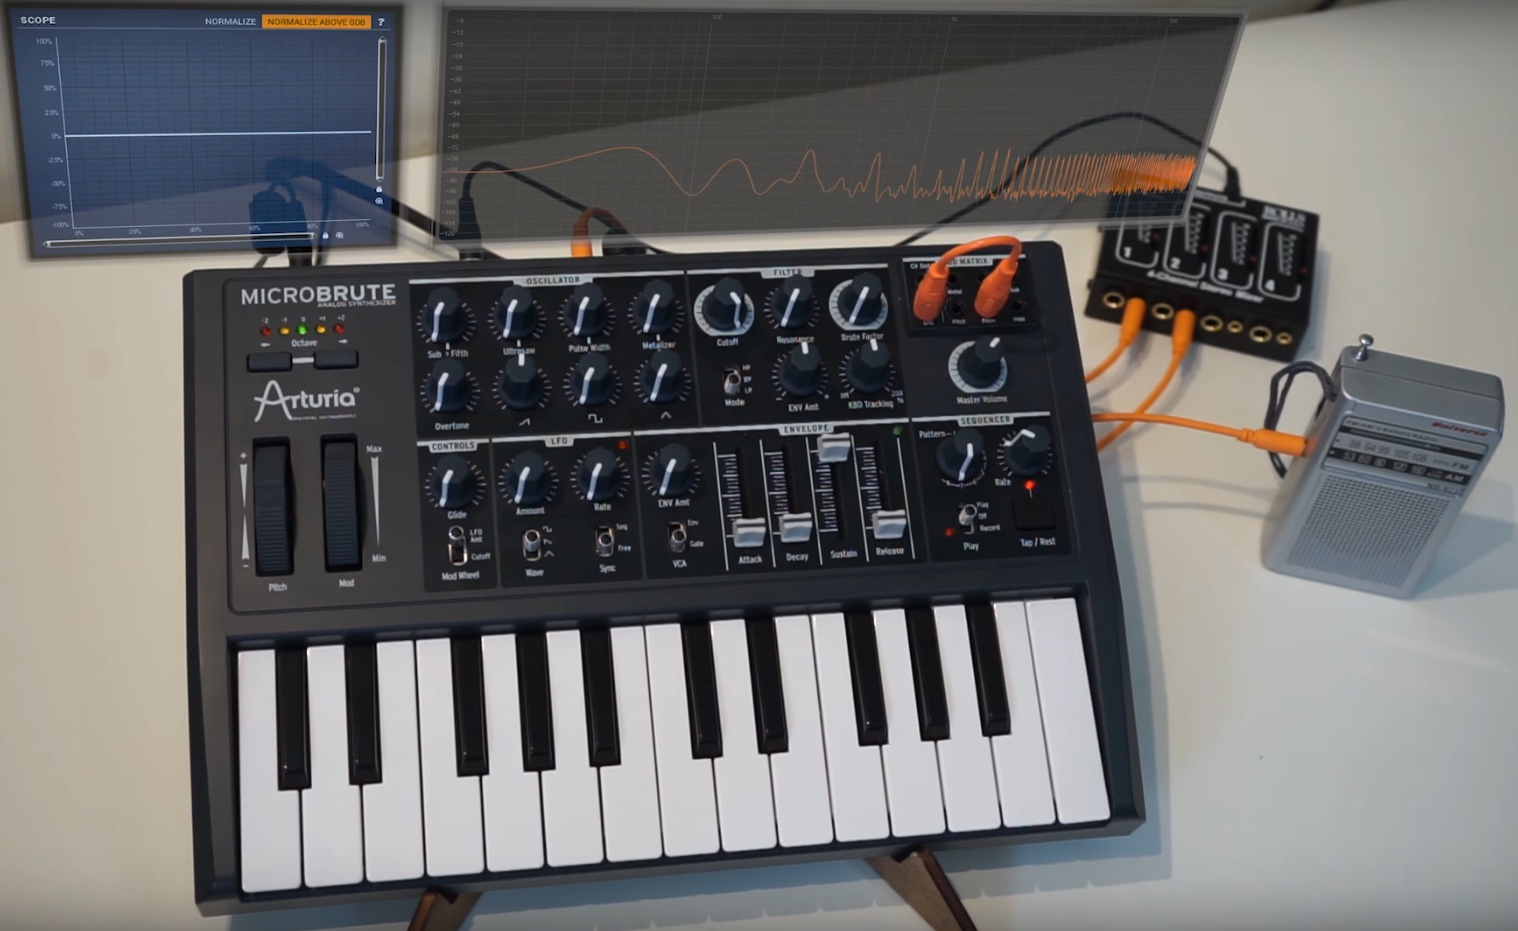 11 Synth Tips And Tricks Using the Arturia Microbrute